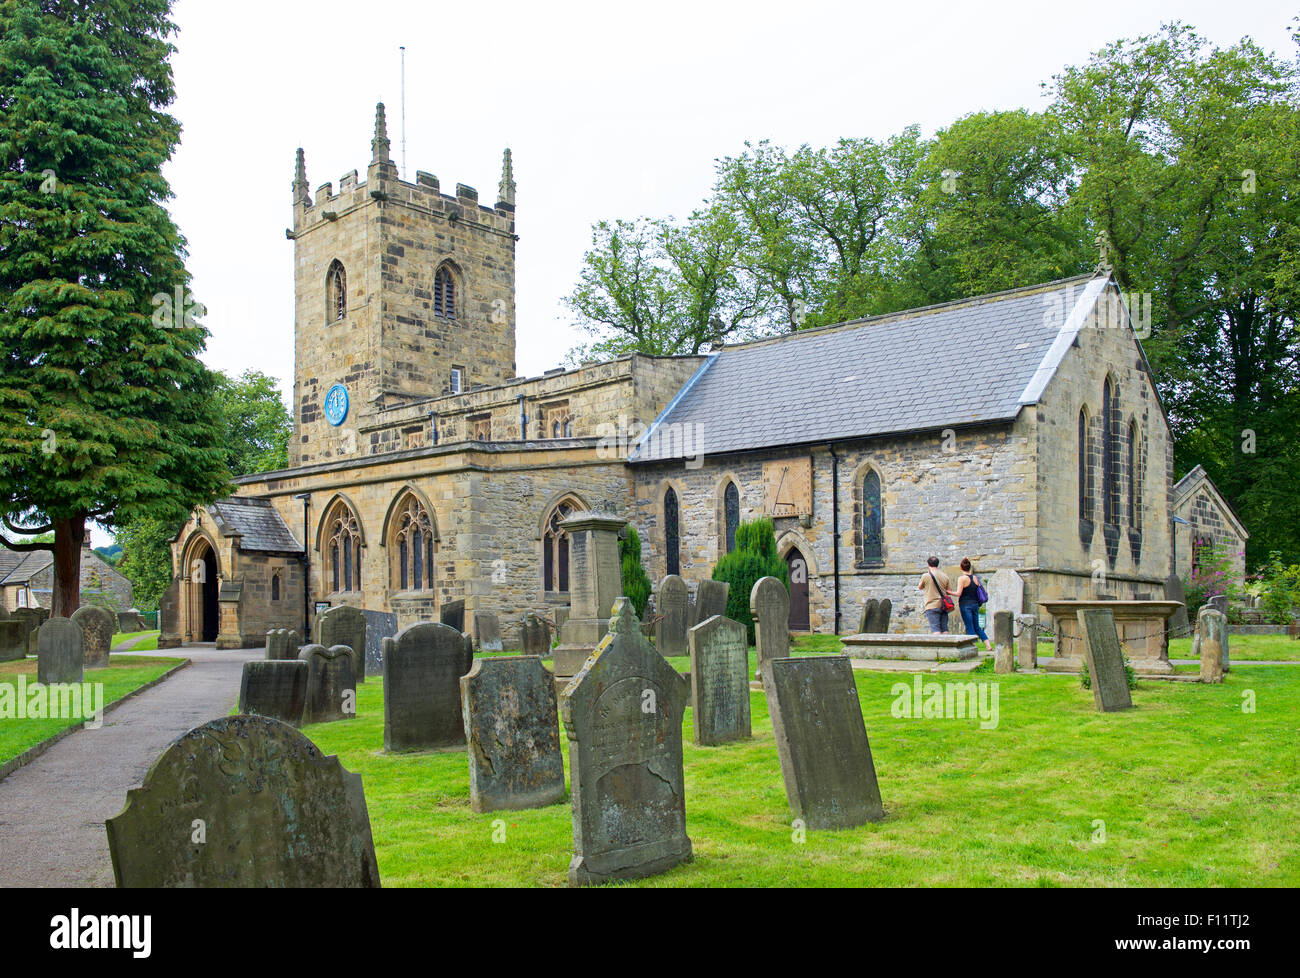 St Lawrence's Church, in the village of Eyam, Peak National Park, Derbyshire, England UK Stock Photo